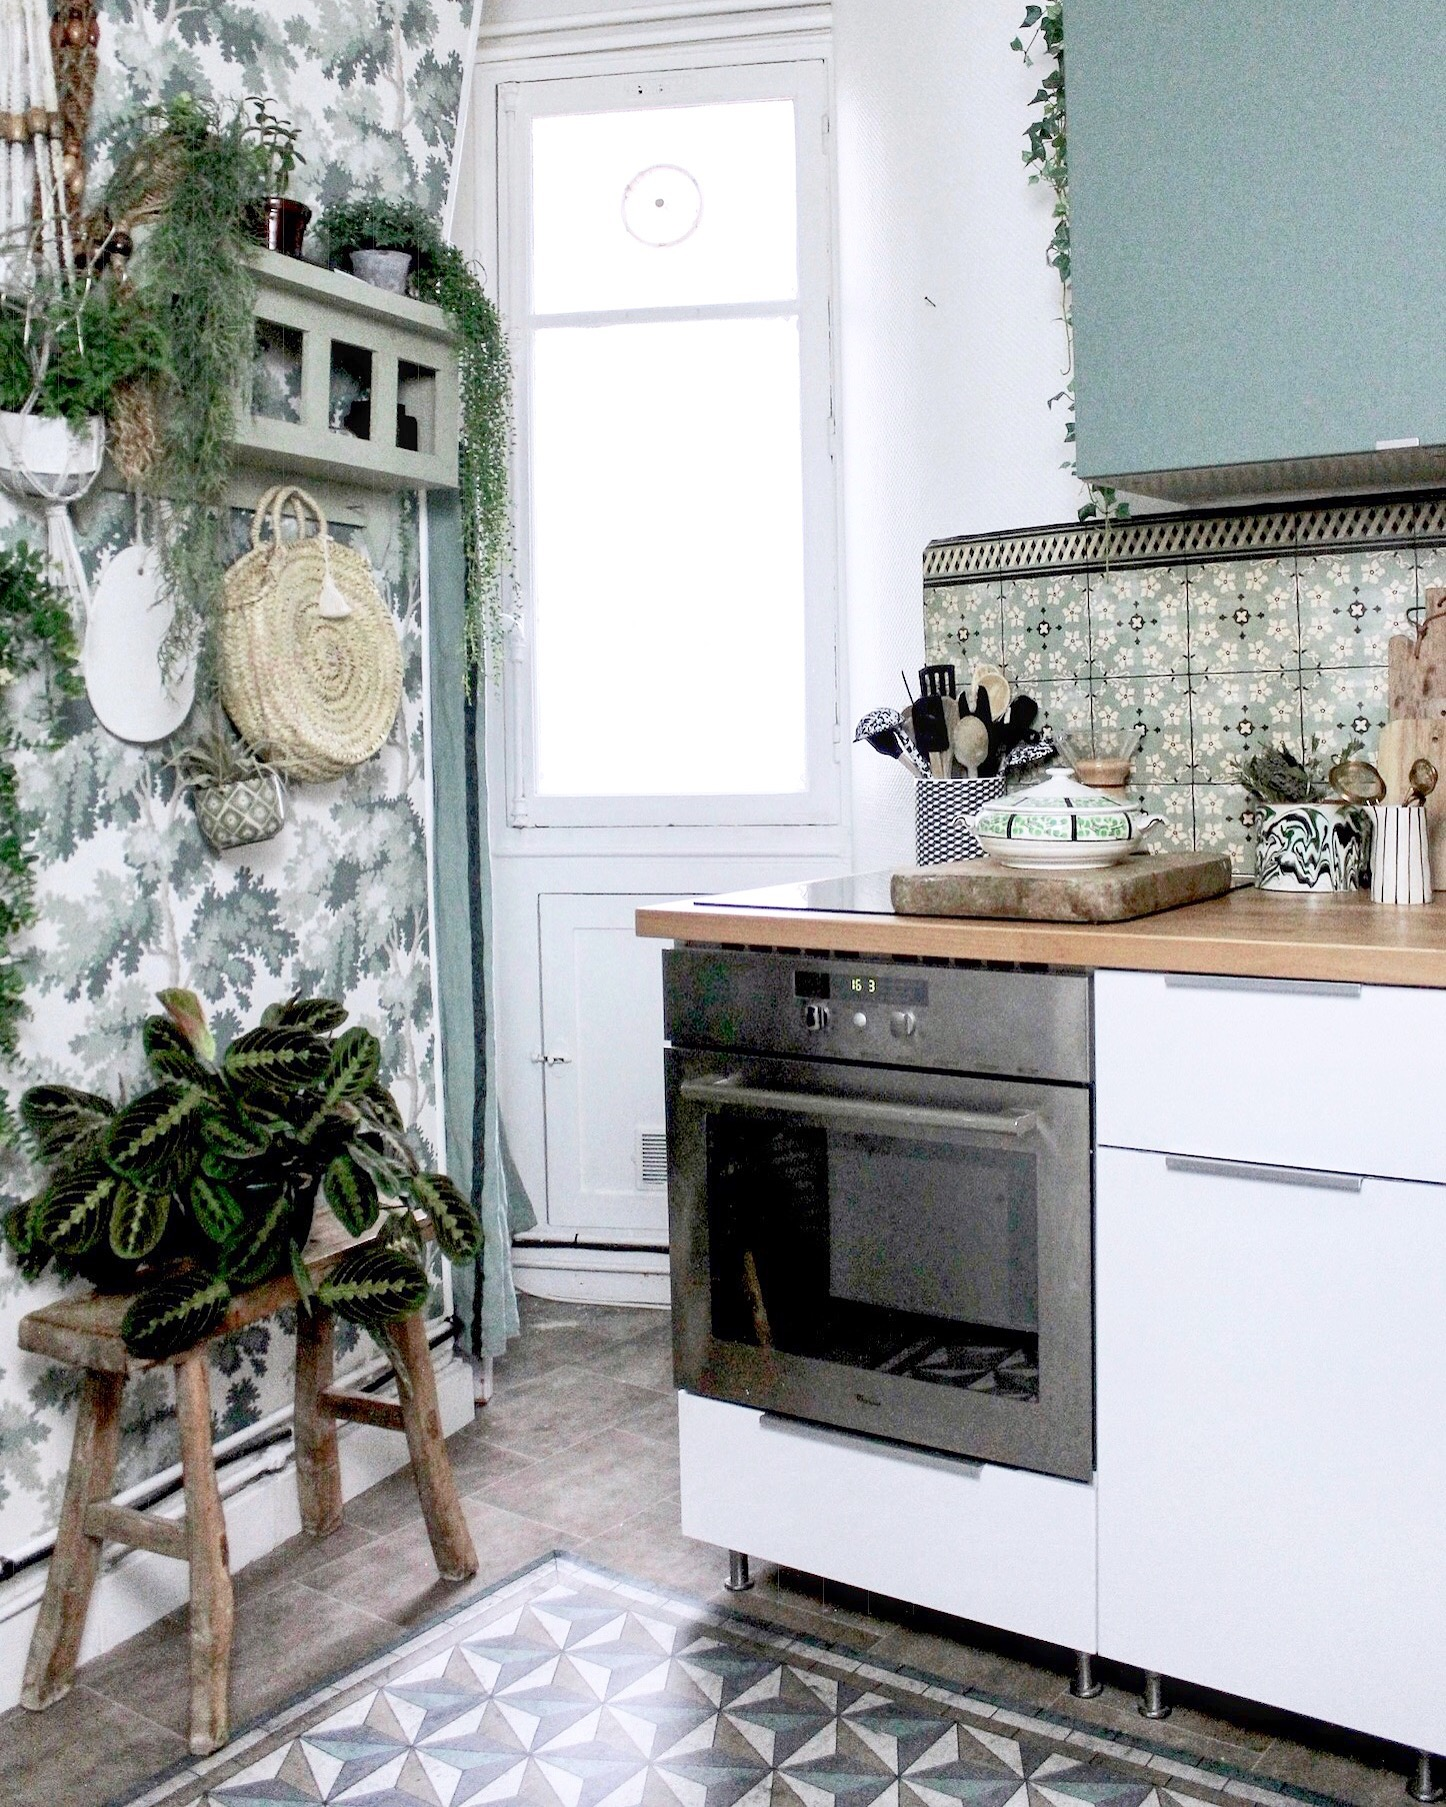 Apartment Wallpaper: In Paris, An Apartment Drenched In Wallpaper Is A Dream